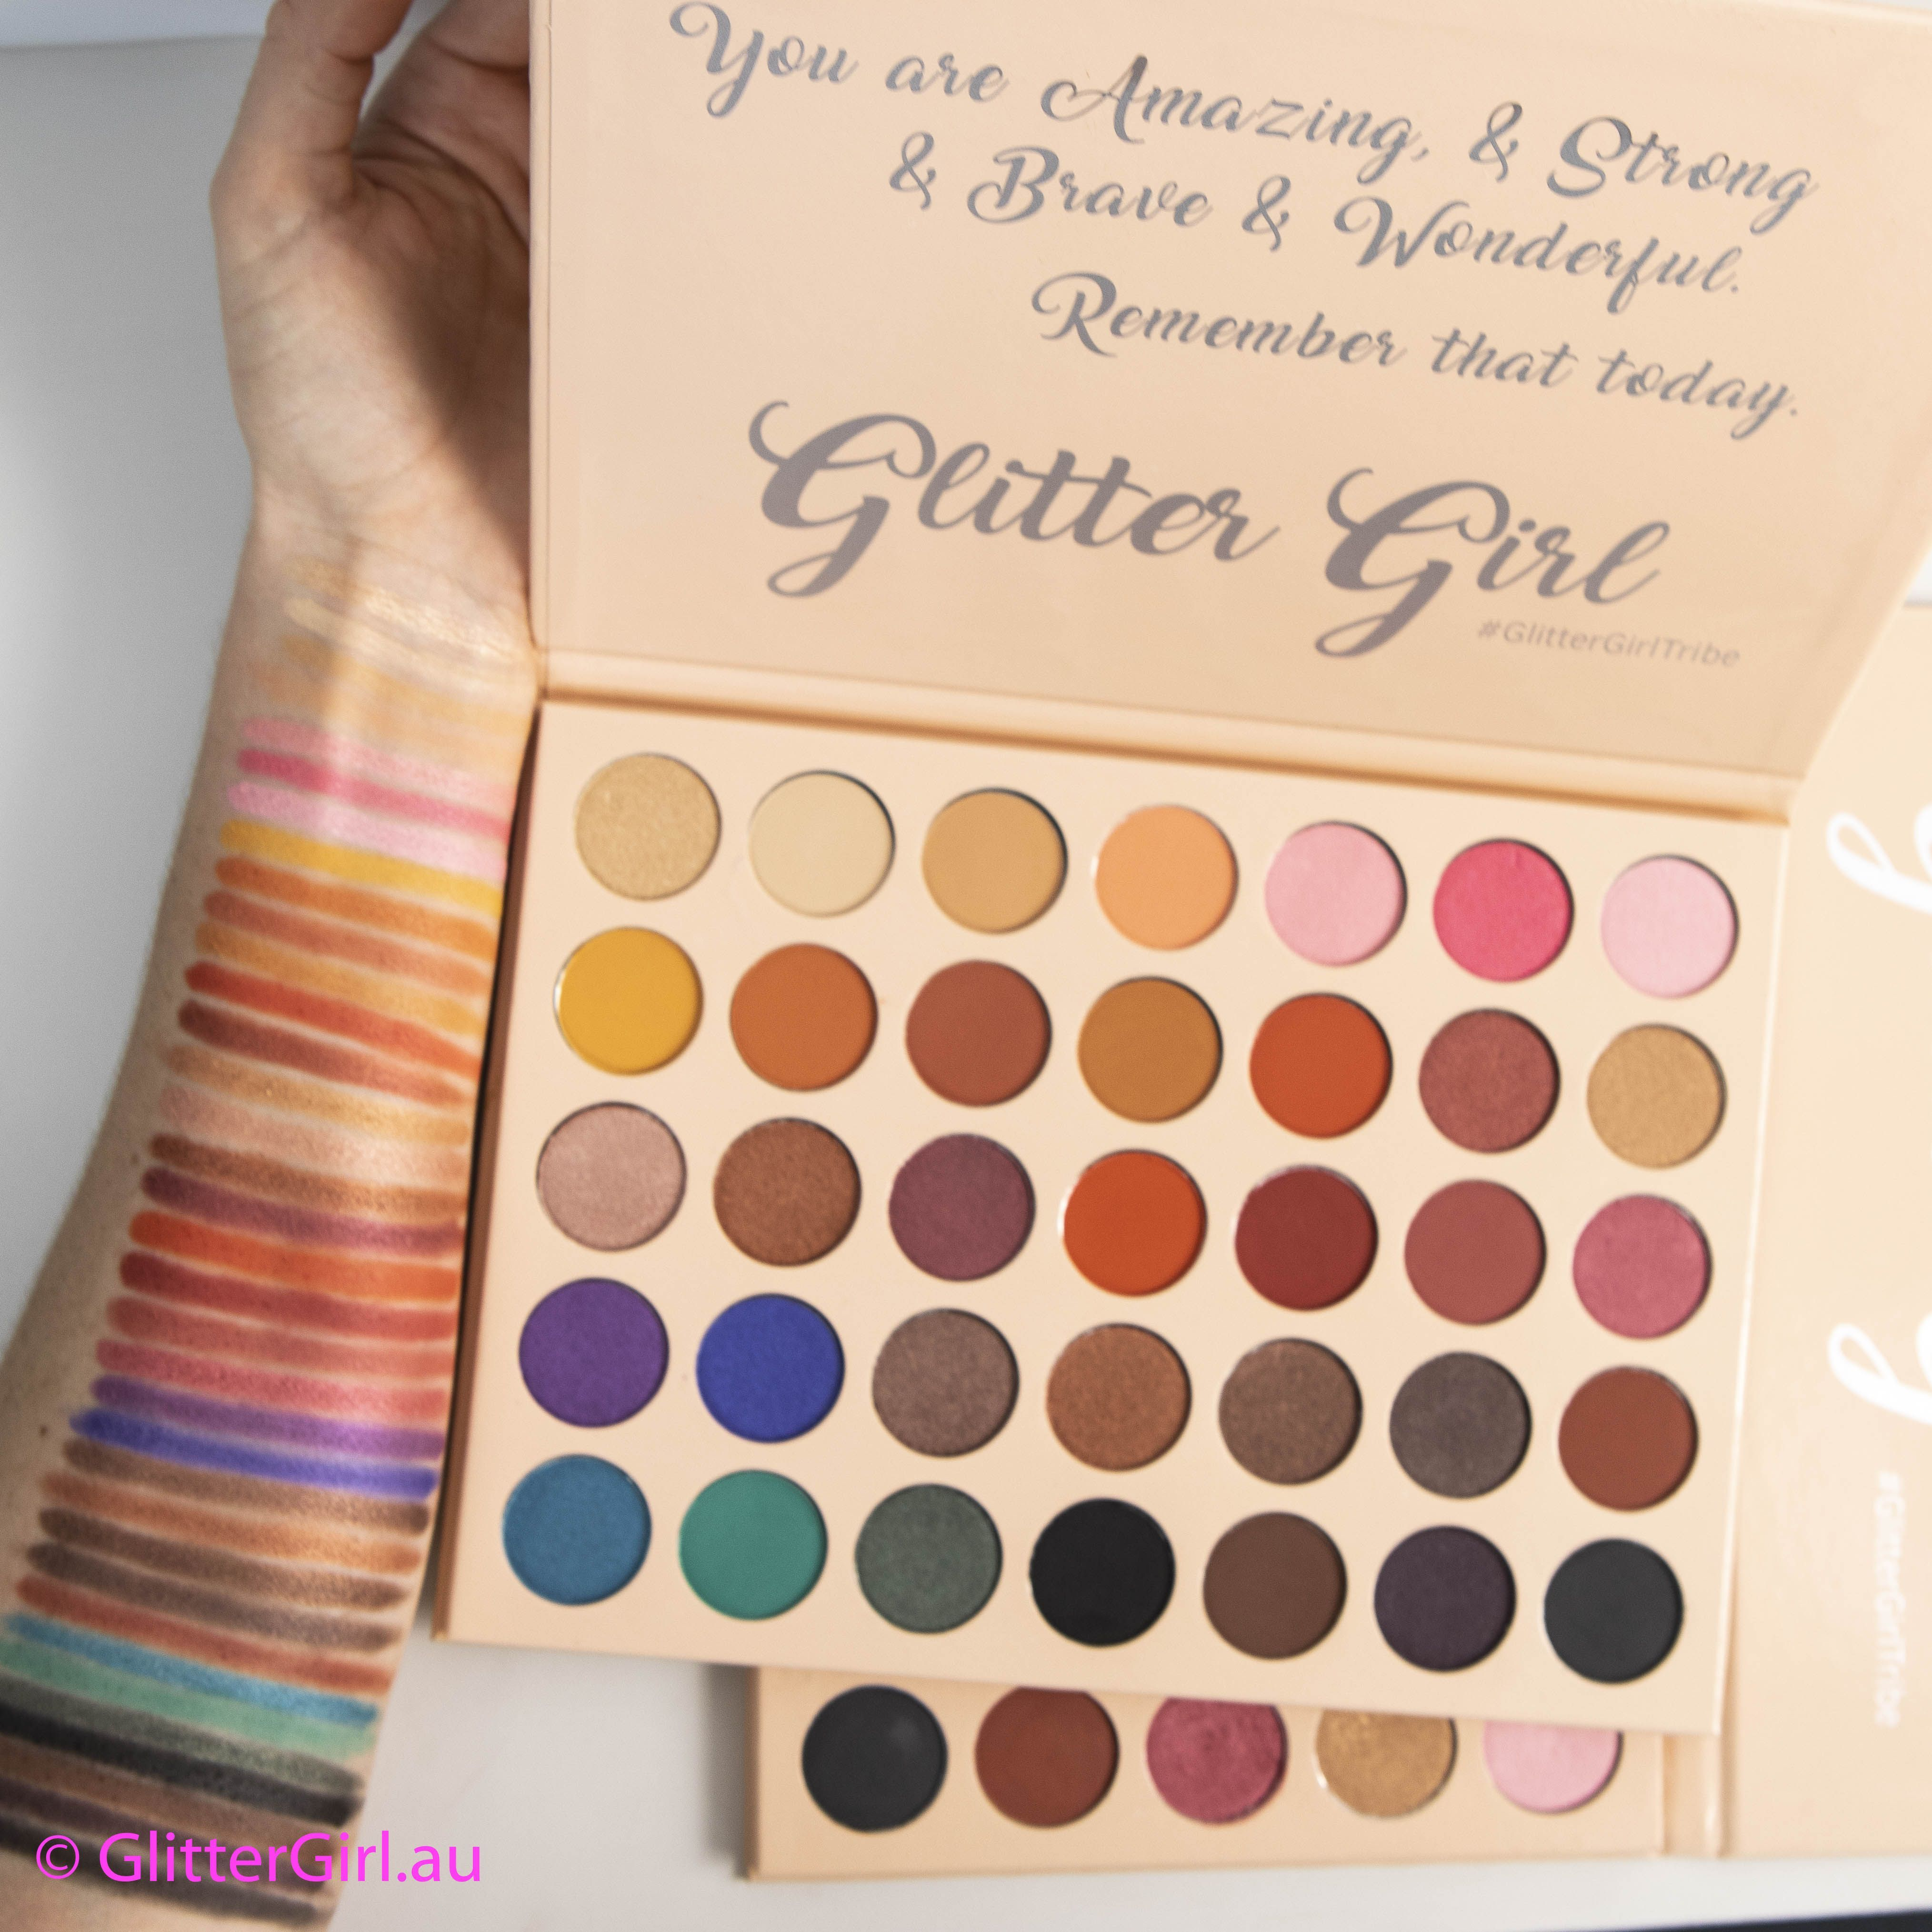 Trophy Palette (With images) Glitter girl